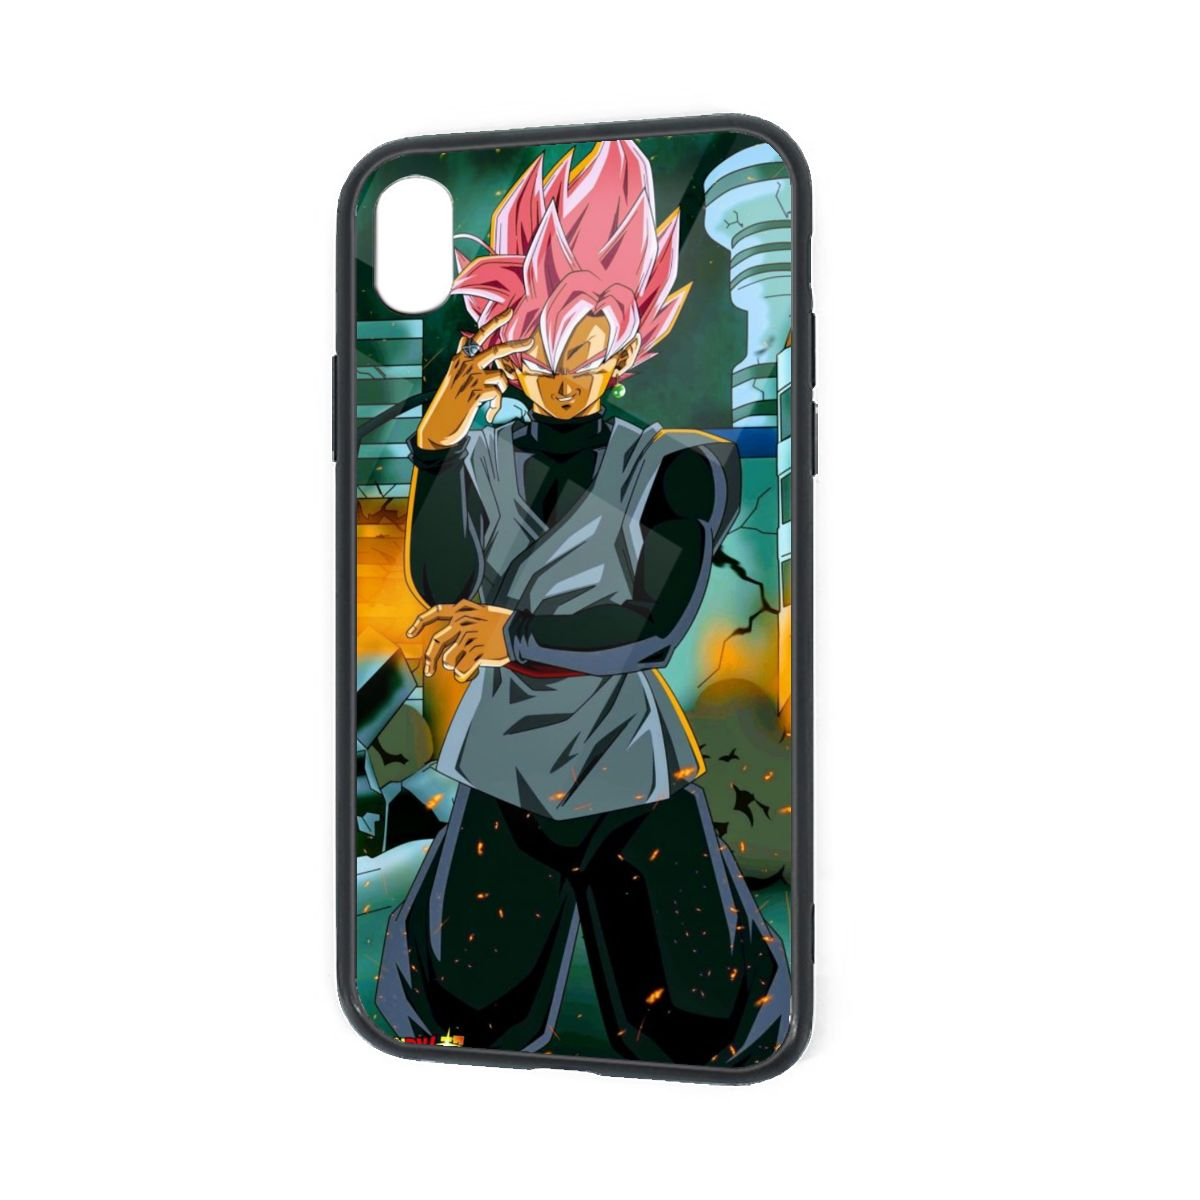 IPhone X XR XS 6 7 8 Plus Hybrid Soft Grip Clear Back Panel Ultra-Thin [Slim Fit] Cover Black Goku Smile